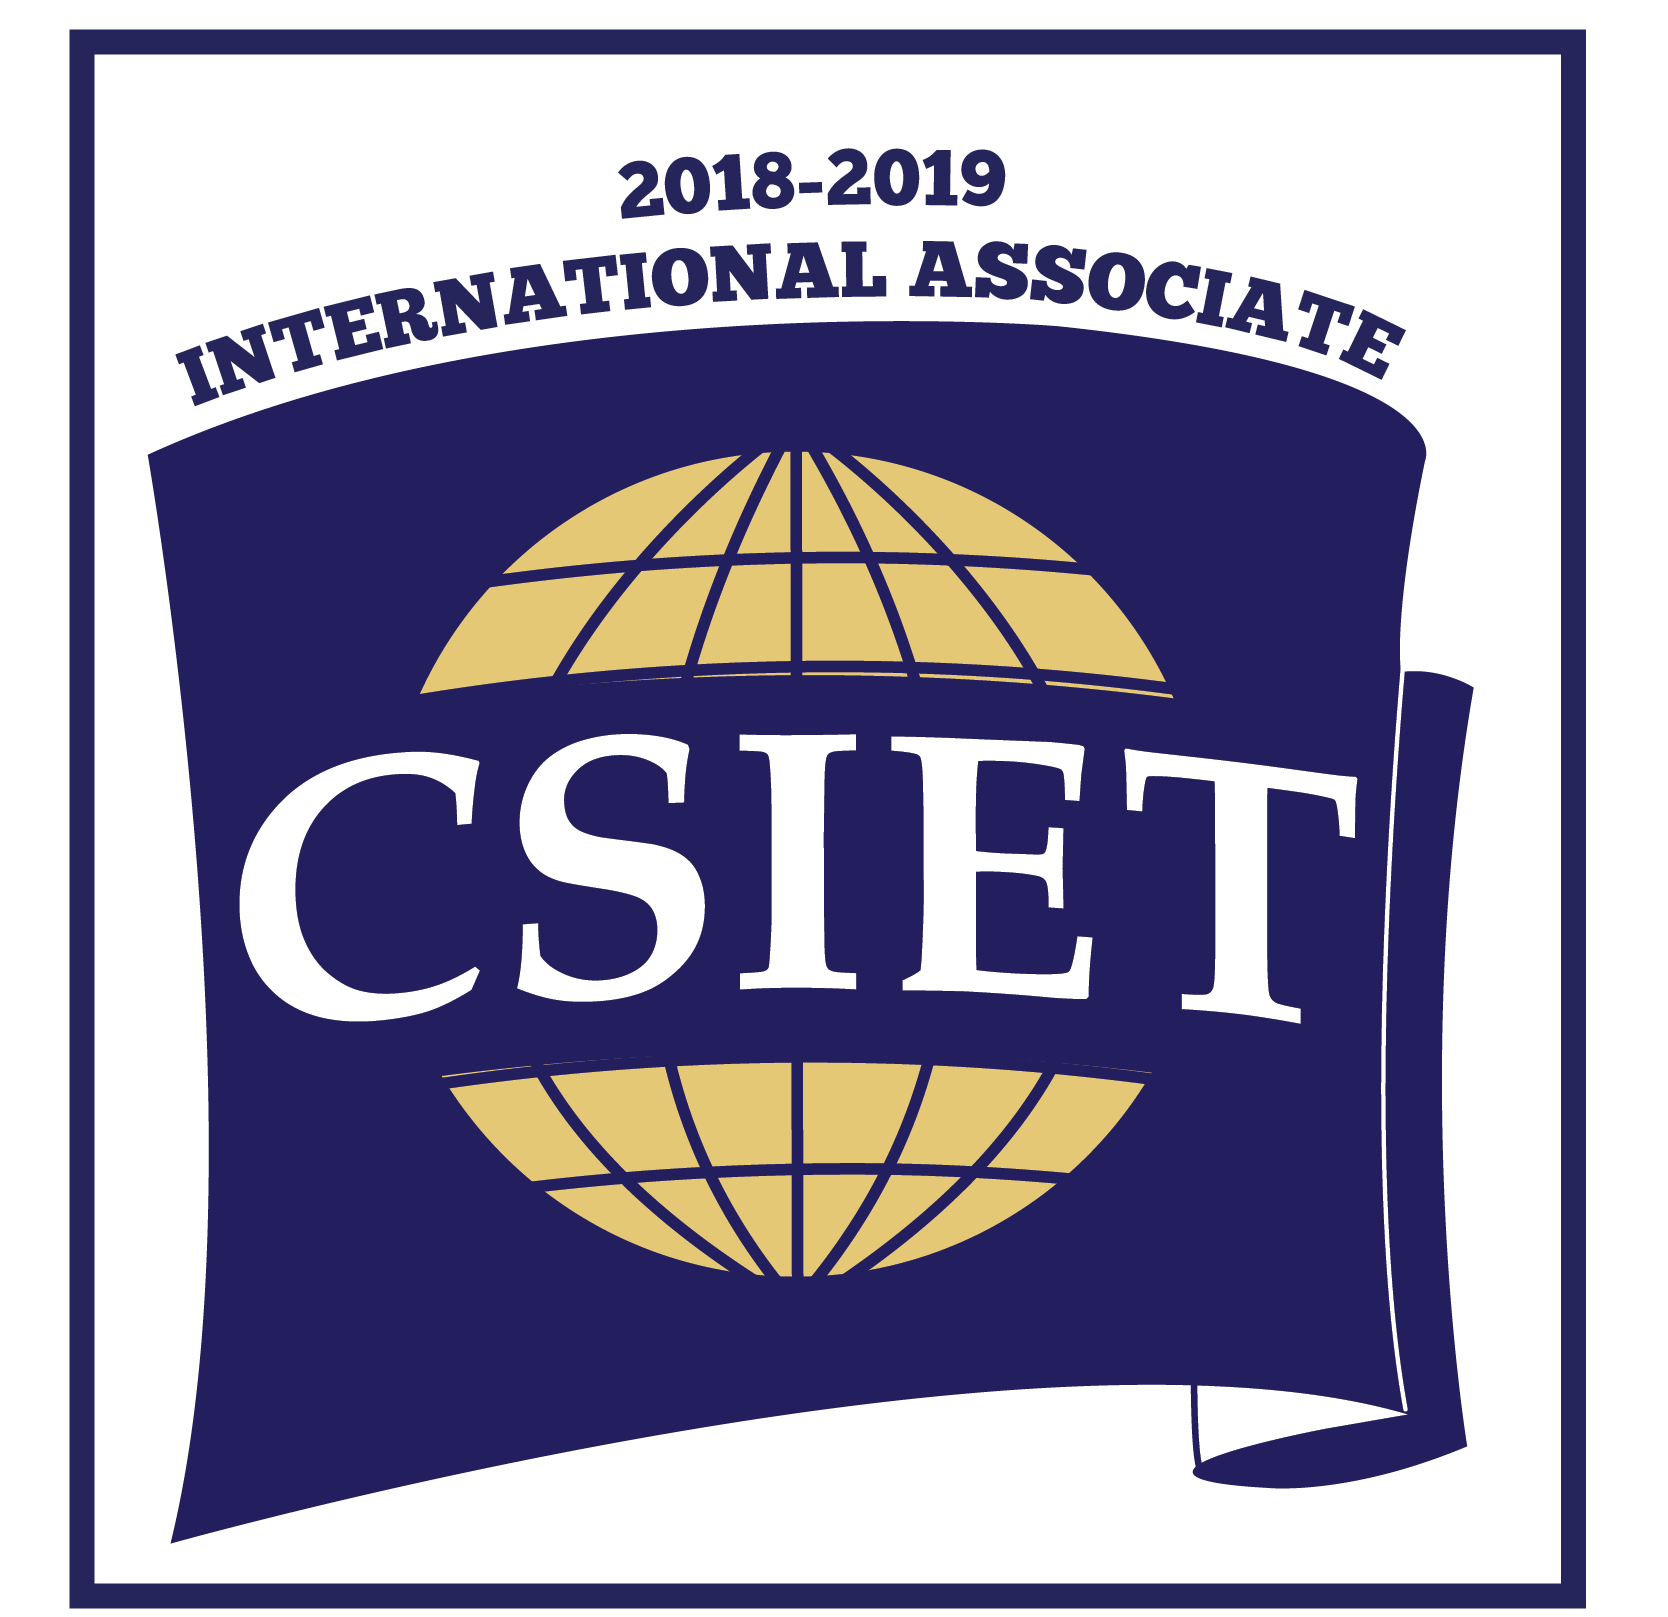 CSIET International Associate Logo.png